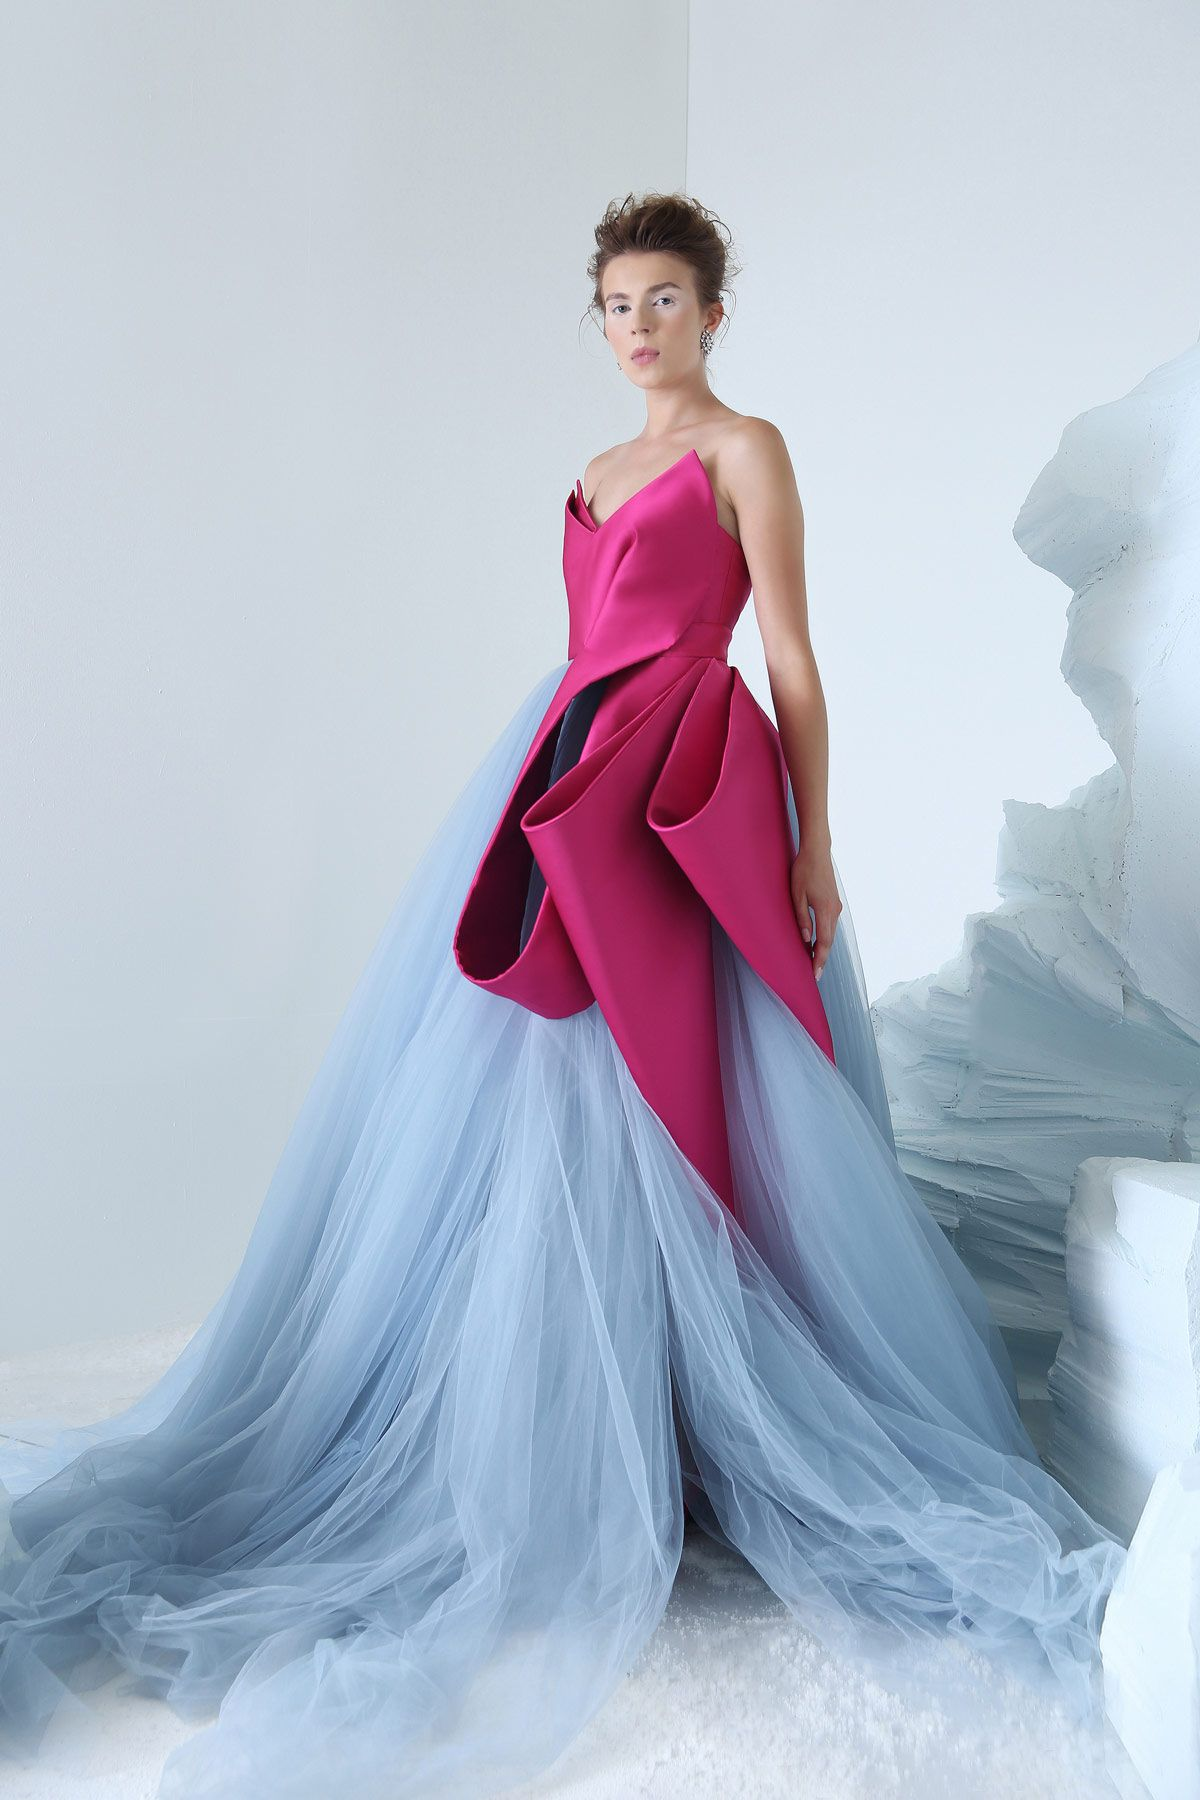 Tchaikovsky bicolor strapless ball gown with sculptural magenta